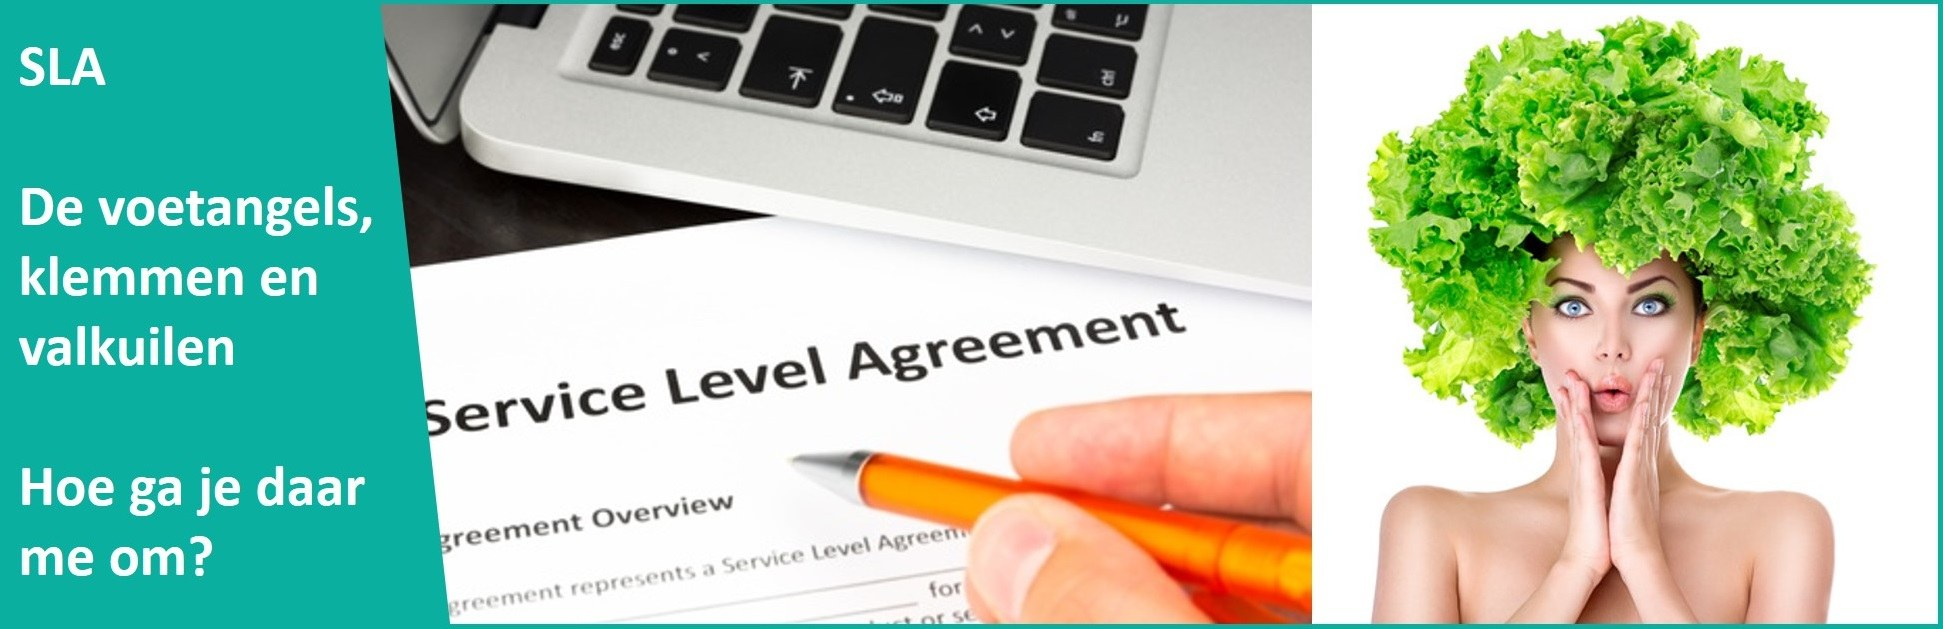 Service Level Agreement bij Outsourcing